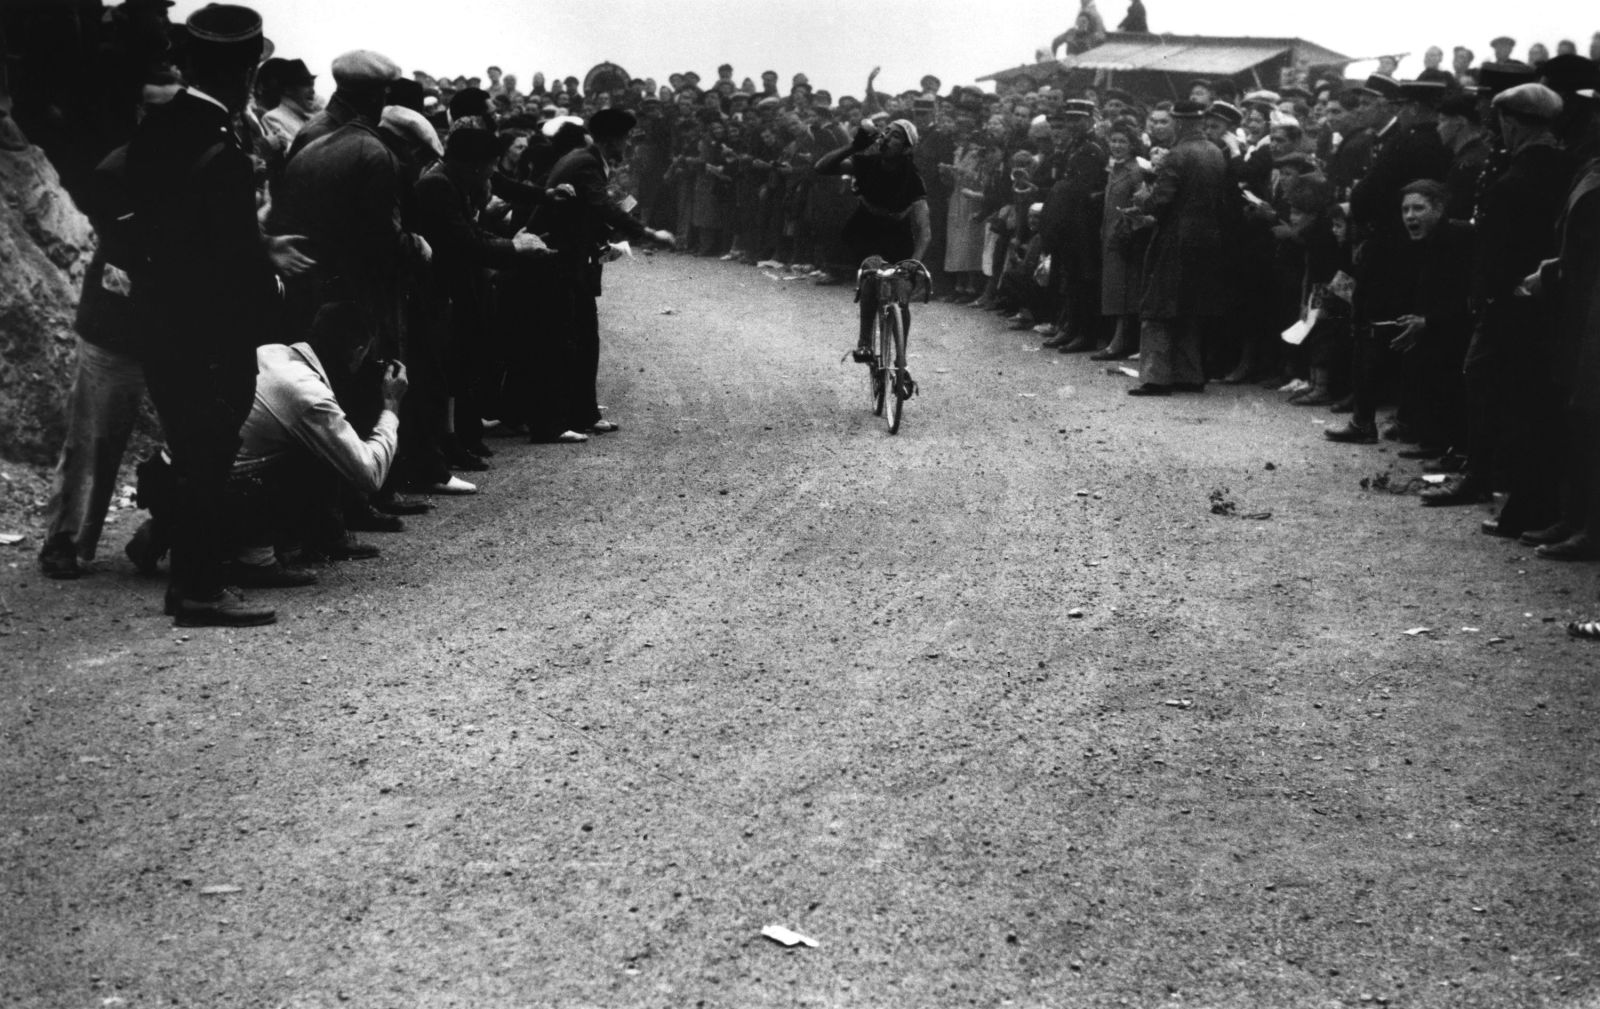 What the Tour de France looked like 80 years ago